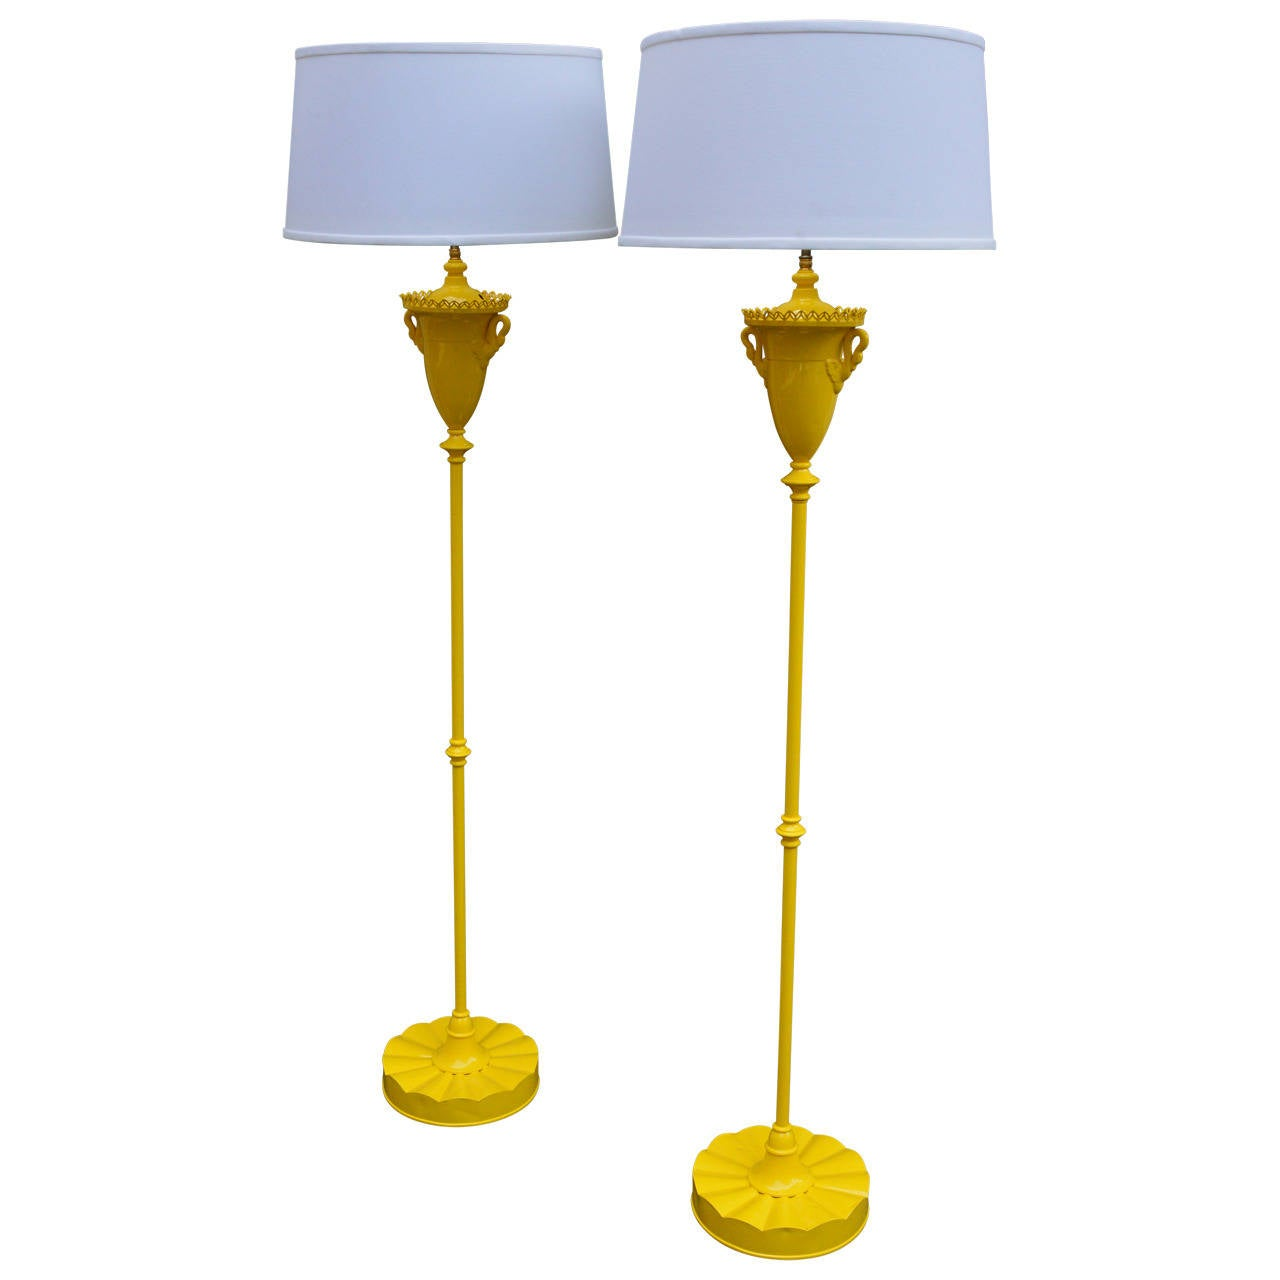 Early 20th century oil lamps electrified for modern use. Beautiful swans adorn these yellow metal lamps. Lamps have been re-wired and use standard medium socket bulbs. Shown with white tapered drum shades (not included).